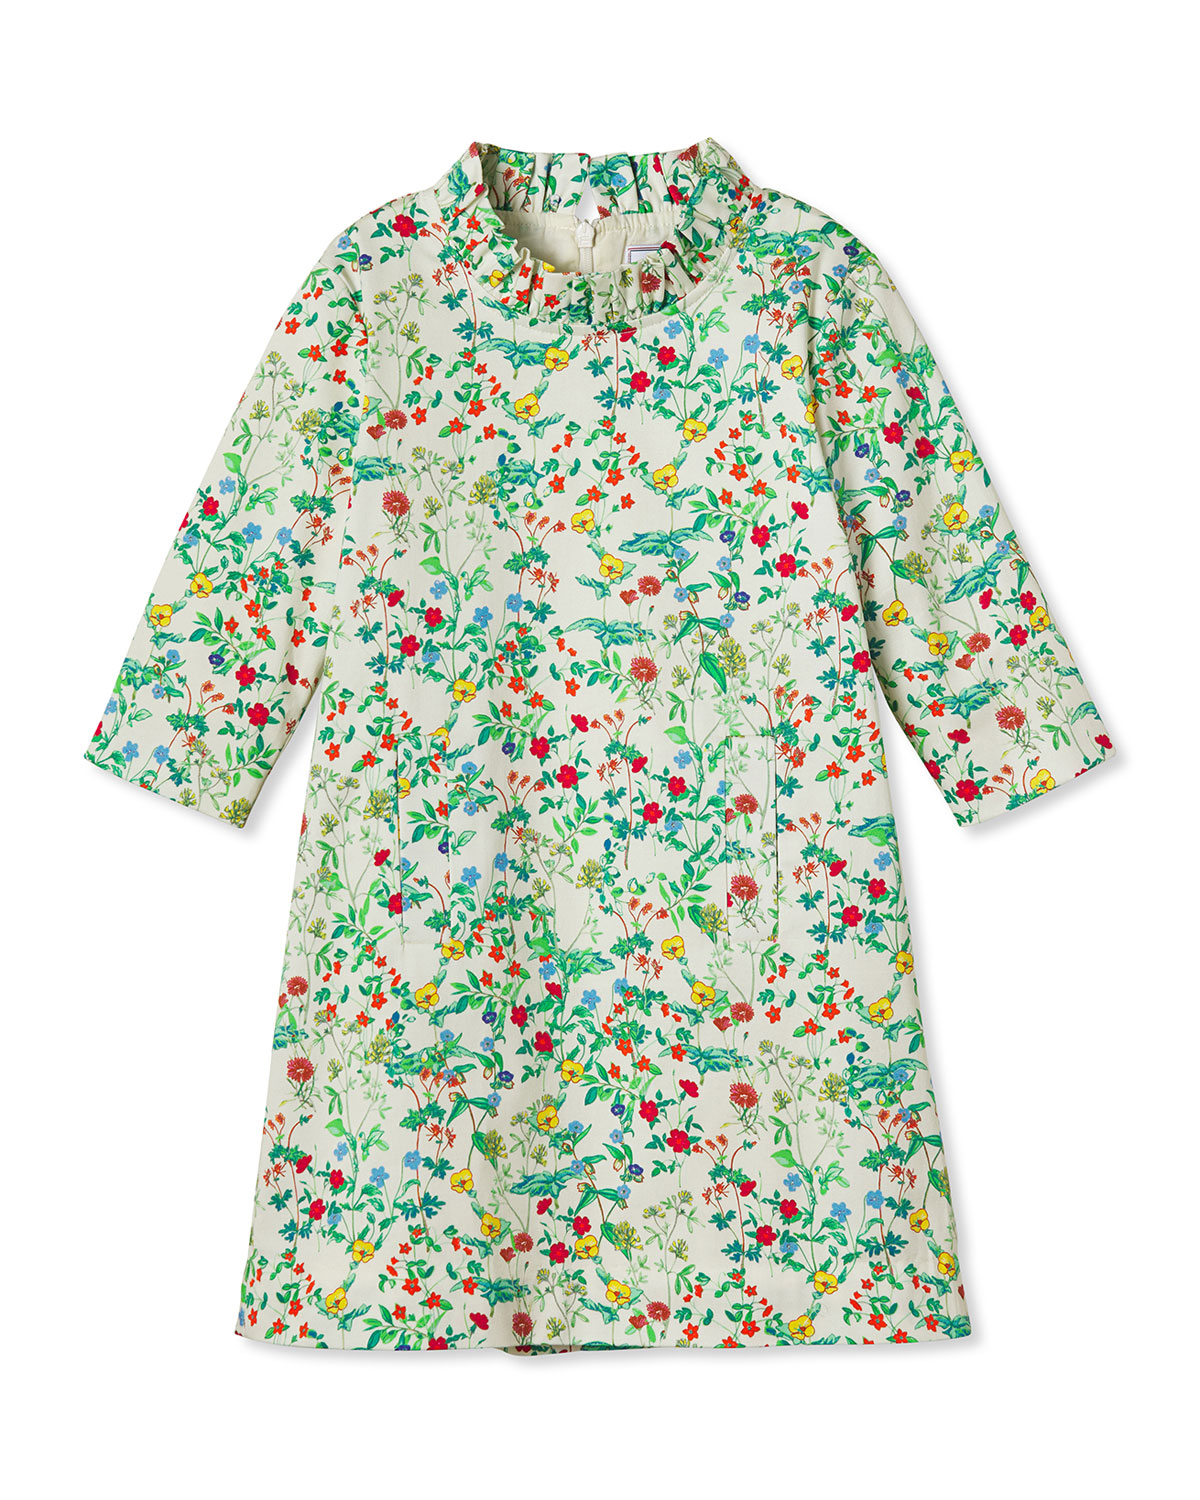 Classic Prep Childrenswear Girl's Claudia Ruched Floral Dress, Size 5-14